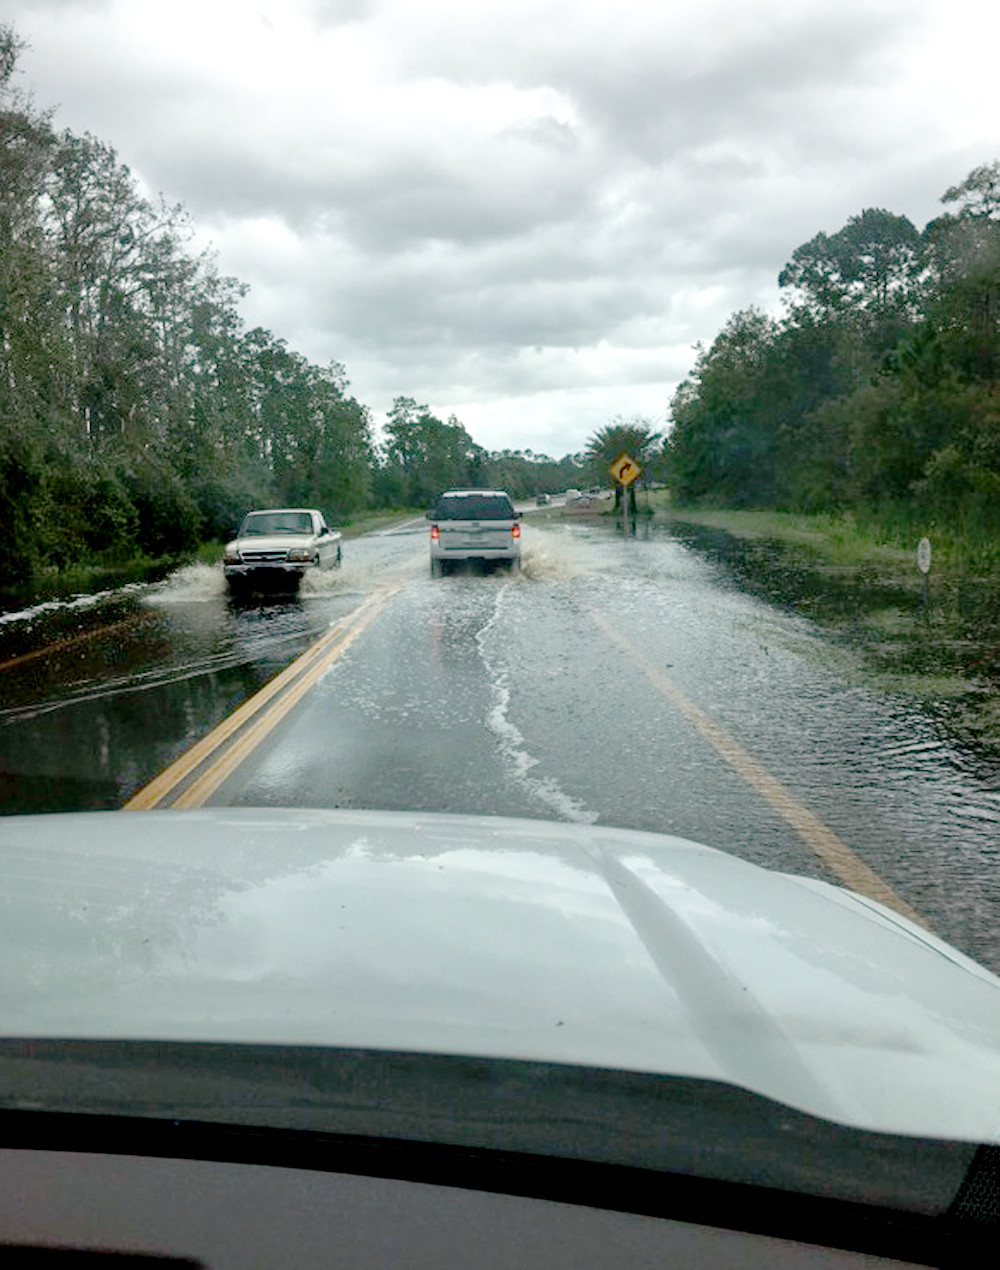 VEHICLES WERE driving cautiously along this flooded roadway in Naples, Fla., as Hurricane Irma passed through the area in September.